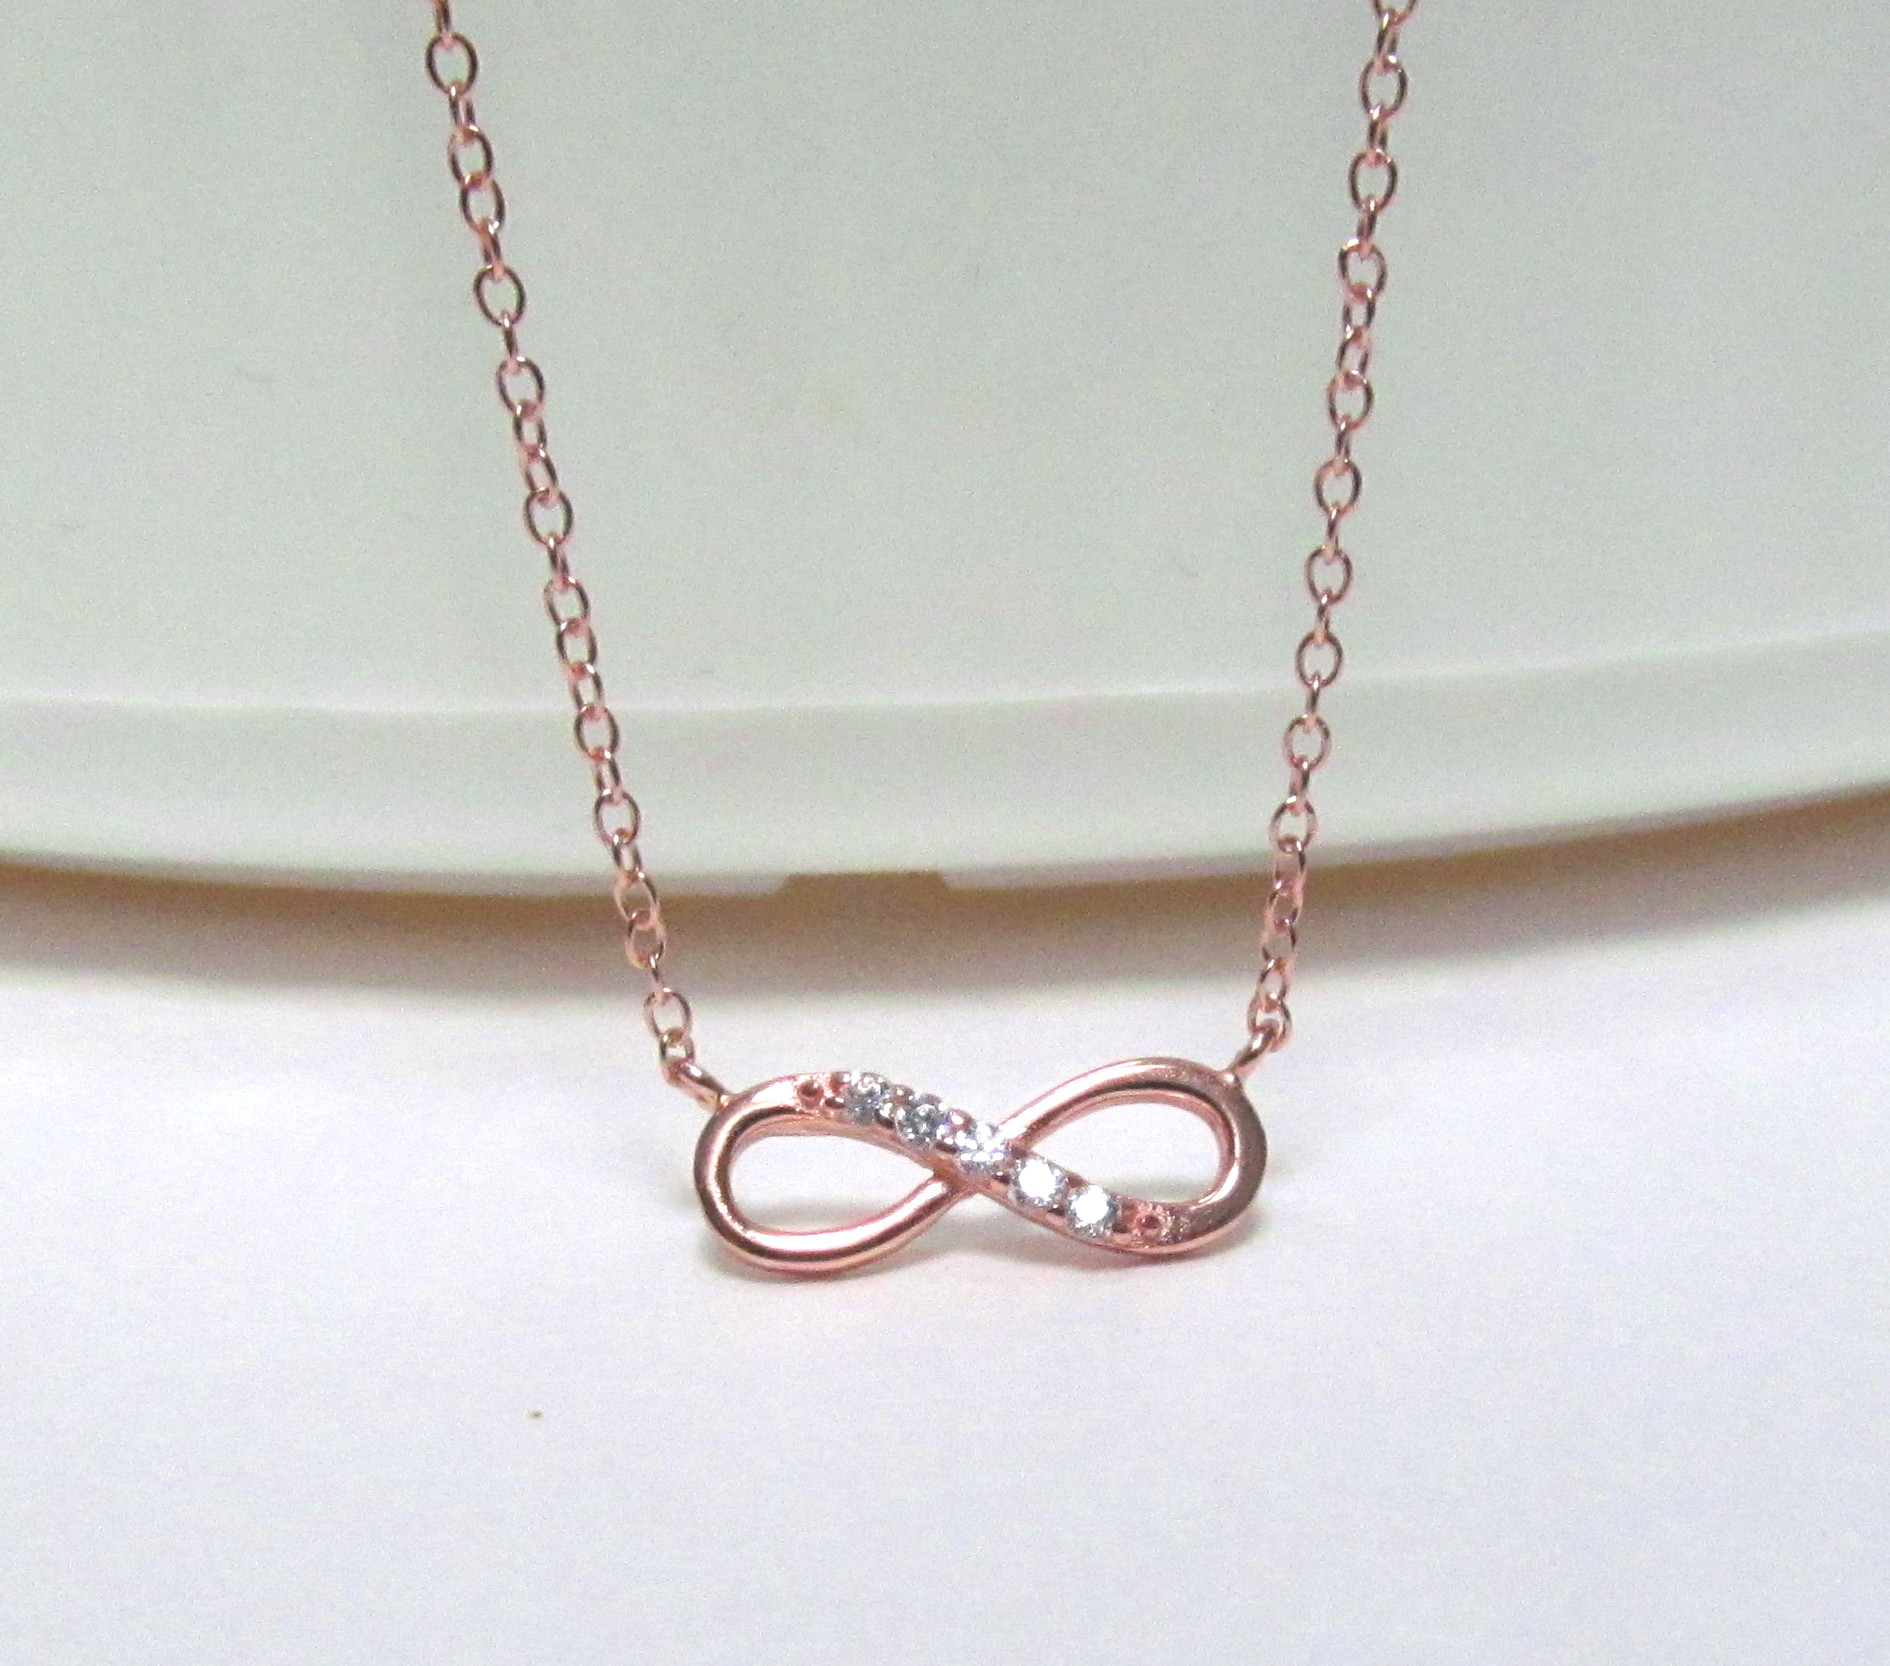 sterling message infinity chains ayl motif necklace pendant ayllu silver az diversity oneness is neckalce open